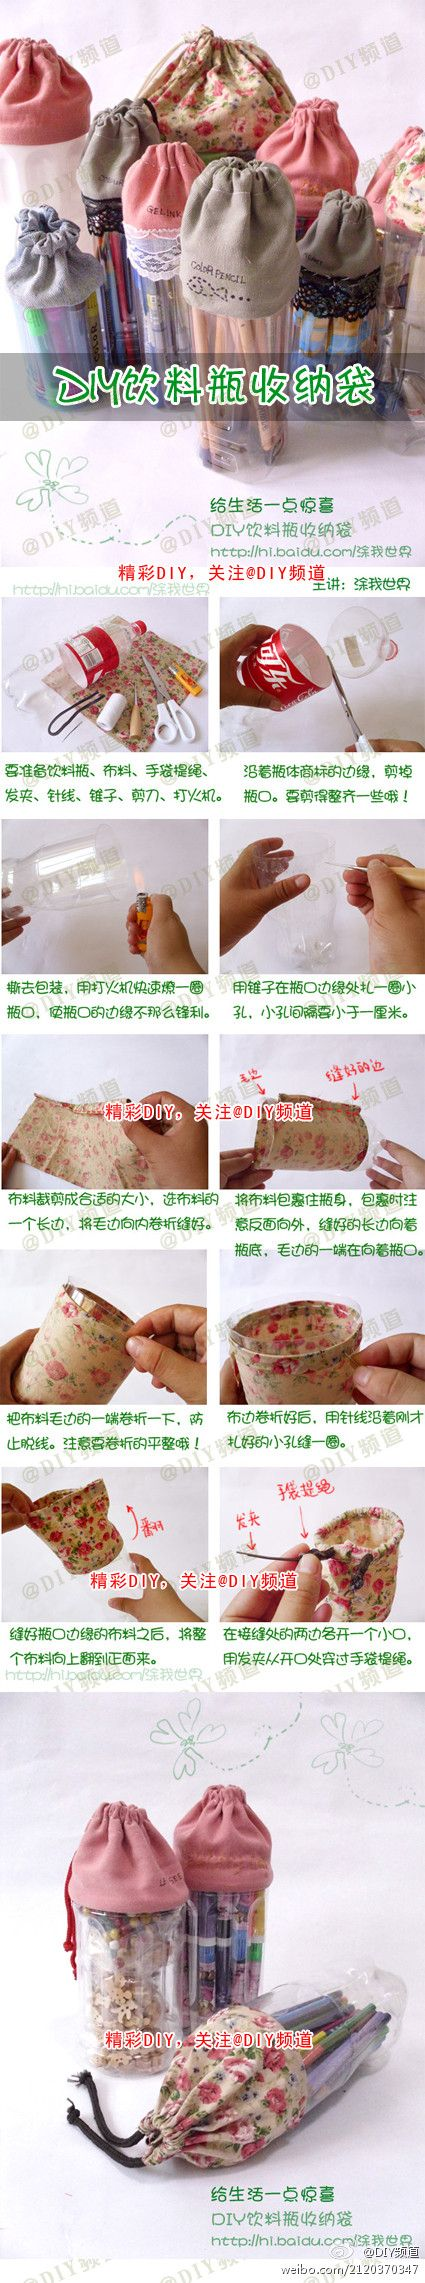 Awesome way to reuse plastic bottles! http://www.duitang.com